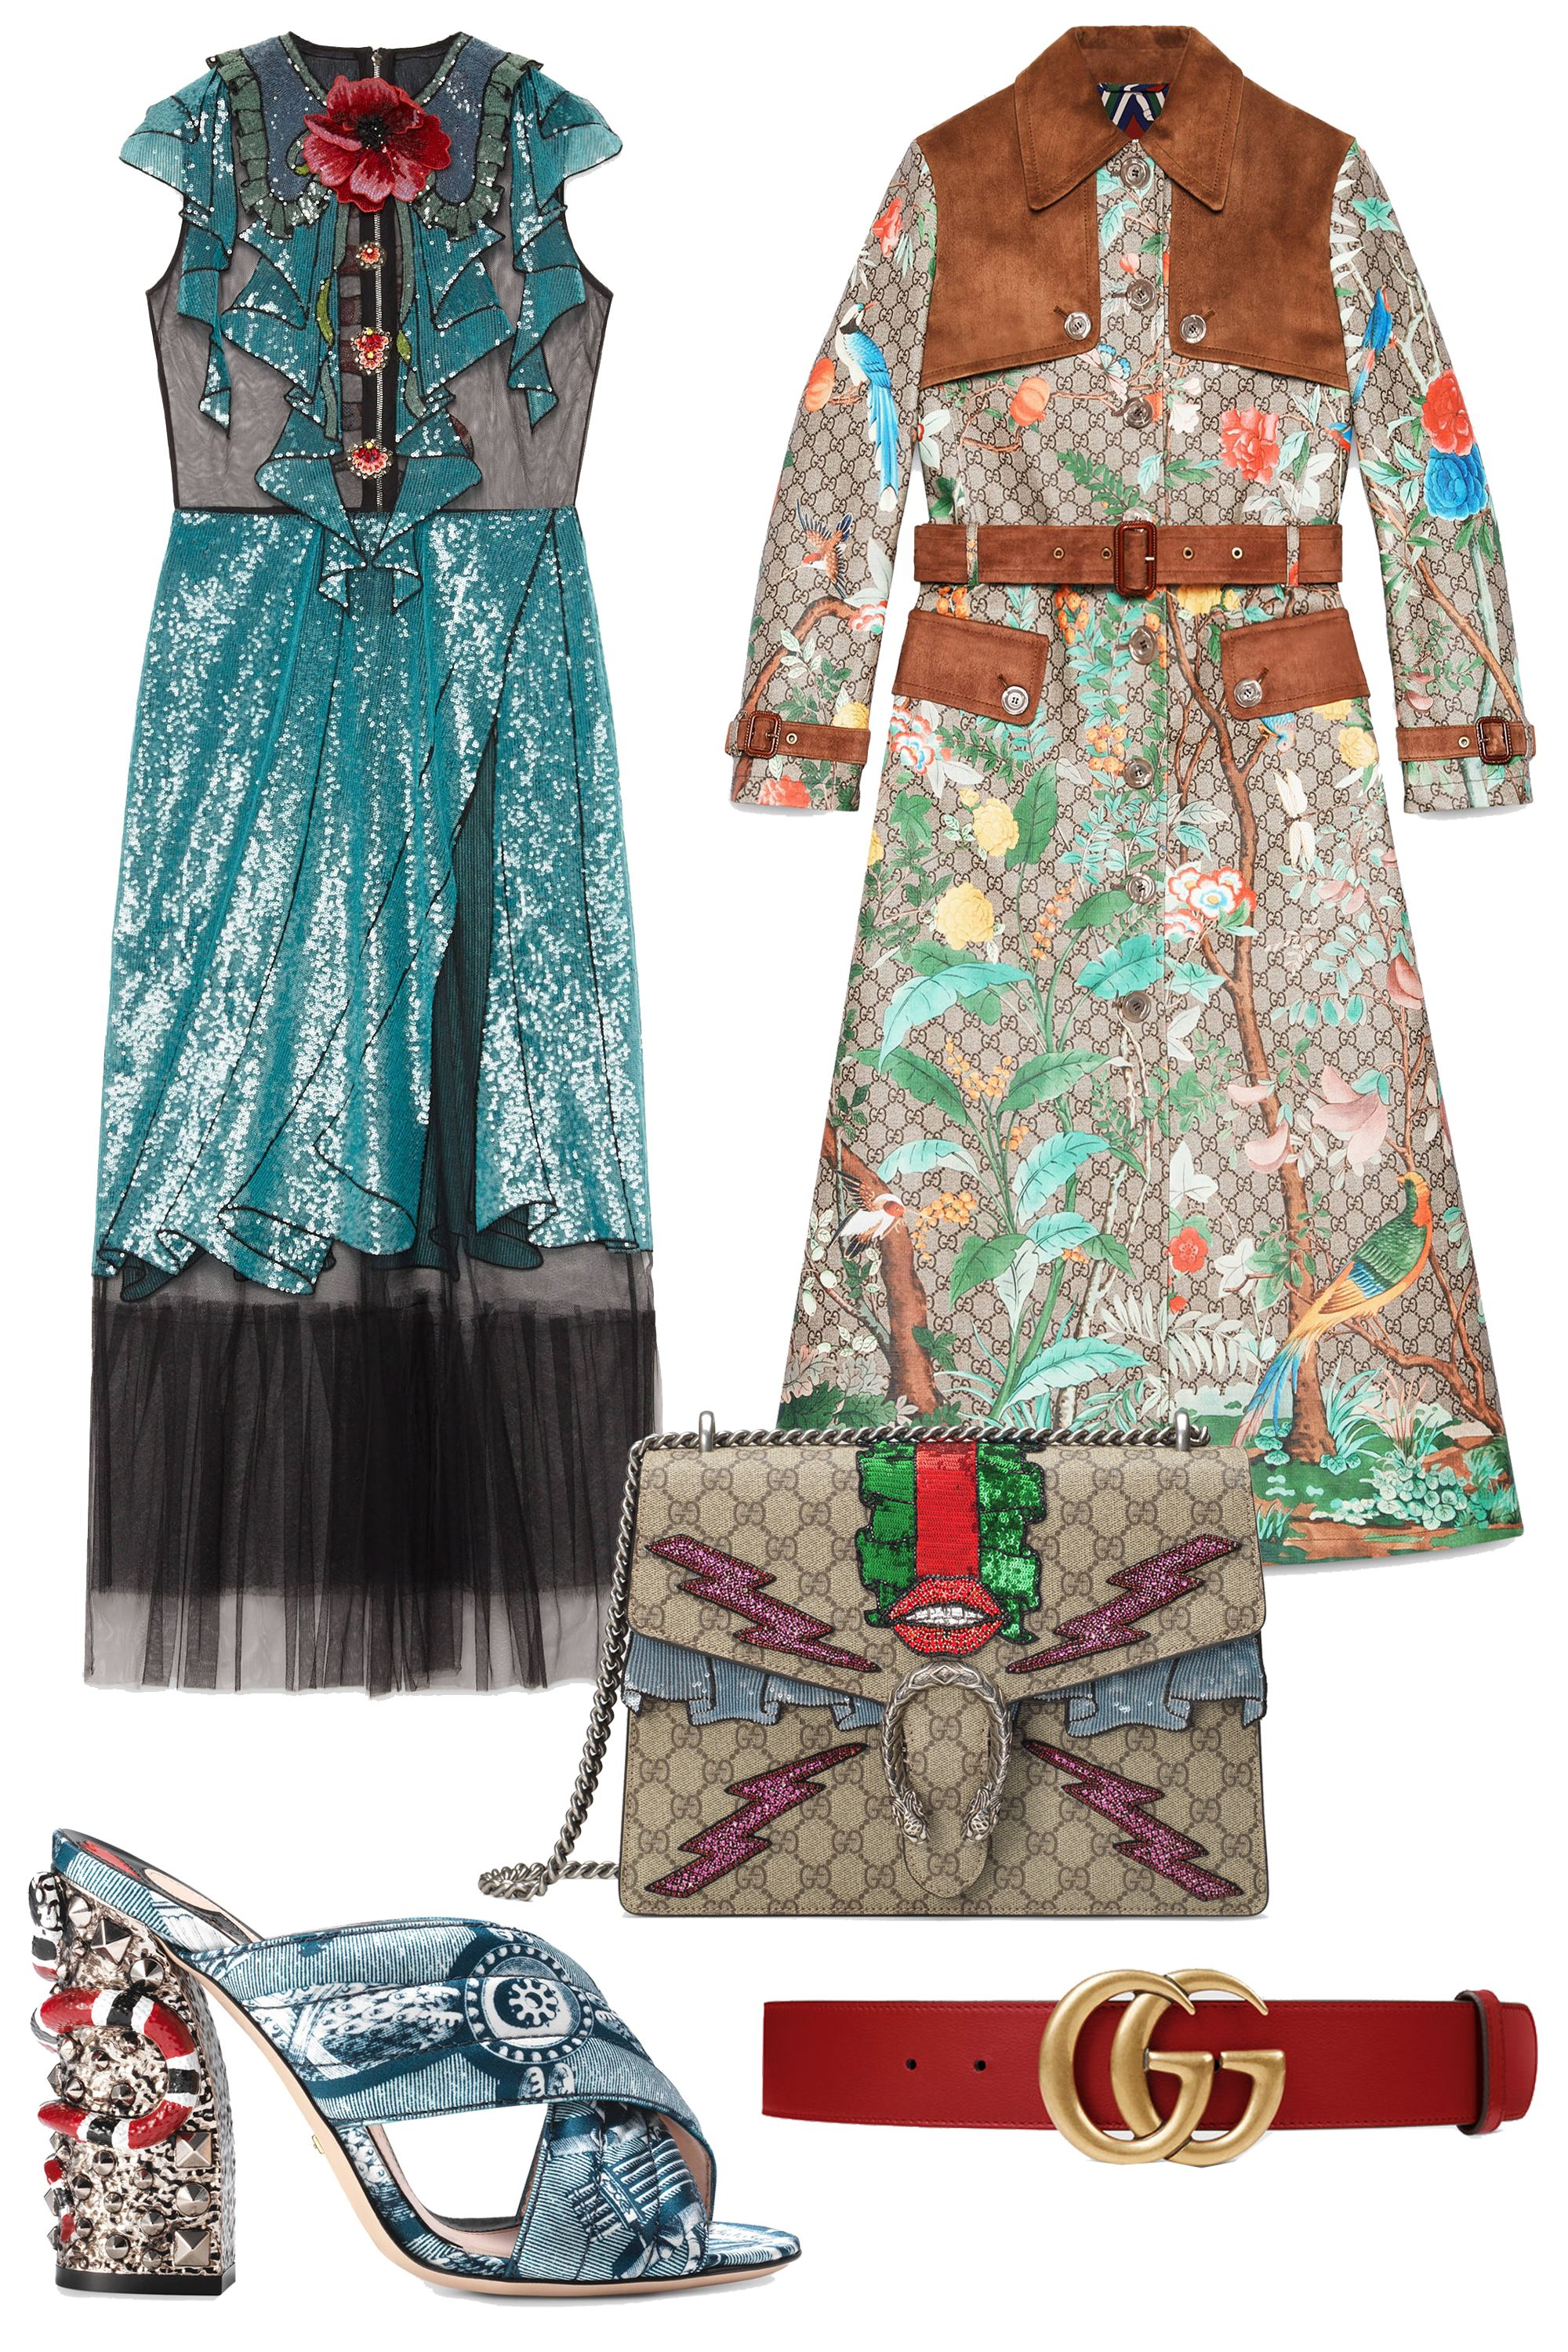 """<p>Sorry (not sorry) guys, we're still under the Gucci spell. Sequined trompe l'oeil dresses, monogrammed belts, Dionysus bags, classic loafers and sparkly mules— Alessandro Michele's whimsical creations will surely be seen everywhere.<em></em></p><p><em>Embroidered Tulle Dress, $7,900; <a href=""""https://www.gucci.com/us/en/pr/women/womens-ready-to-wear/womens-dresses-jumpsuits/dresses/embroidered-tulle-dress-p-421694ZGK161969?listName=LookDetailsCarouselComponent&position=1"""" target=""""_blank"""">gucci.com</a></em></p><p><em>Tian Print GG Supreme Coat, $5,990; <a href=""""https://www.gucci.com/us/en/pr/women/womens-ready-to-wear/womens-coats-outerwear/tian-print-gg-supreme-coat-p-420369ZGK302713?listName=LookDetailsCarouselComponent&position=1"""" target=""""_blank"""">gucci.com</a></em></p><p><em>Dionysus GG Supreme Embroidered Bag, $3,800; <a href=""""https://www.gucci.com/us/en/pr/women/handbags/womens-shoulder-bags/dionysus-gg-supreme-embroidered-bag-p-400235KWZYN8700?listName=LookDetailsCarouselComponent&position=2"""" target=""""_blank"""">gucci.com</a></em></p><p><em>Romain Satin Crossover Sandal, $990; <a href=""""https://www.gucci.com/us/en/pr/women/womens-shoes/womens-sandals/romain-satin-crossover-sandal-p-422050K0I004143?listName=LookDetailsCarouselComponent&position=4"""" target=""""_blank"""">gucci.com</a></em></p><p><em>Leather Belt with Double G Buckle, $420; </em><a href=""""https://www.gucci.com/us/en/pr/women/womens-accessories/womens-belts/leather-belt-with-double-g-buckle-p-400593AP00T6339?position=13&listName=ProductGridWComponent&categoryPath=Women/Womens-Accessories/Womens-Belts"""" target=""""_blank""""><em>gucci.com</em></a></p>"""